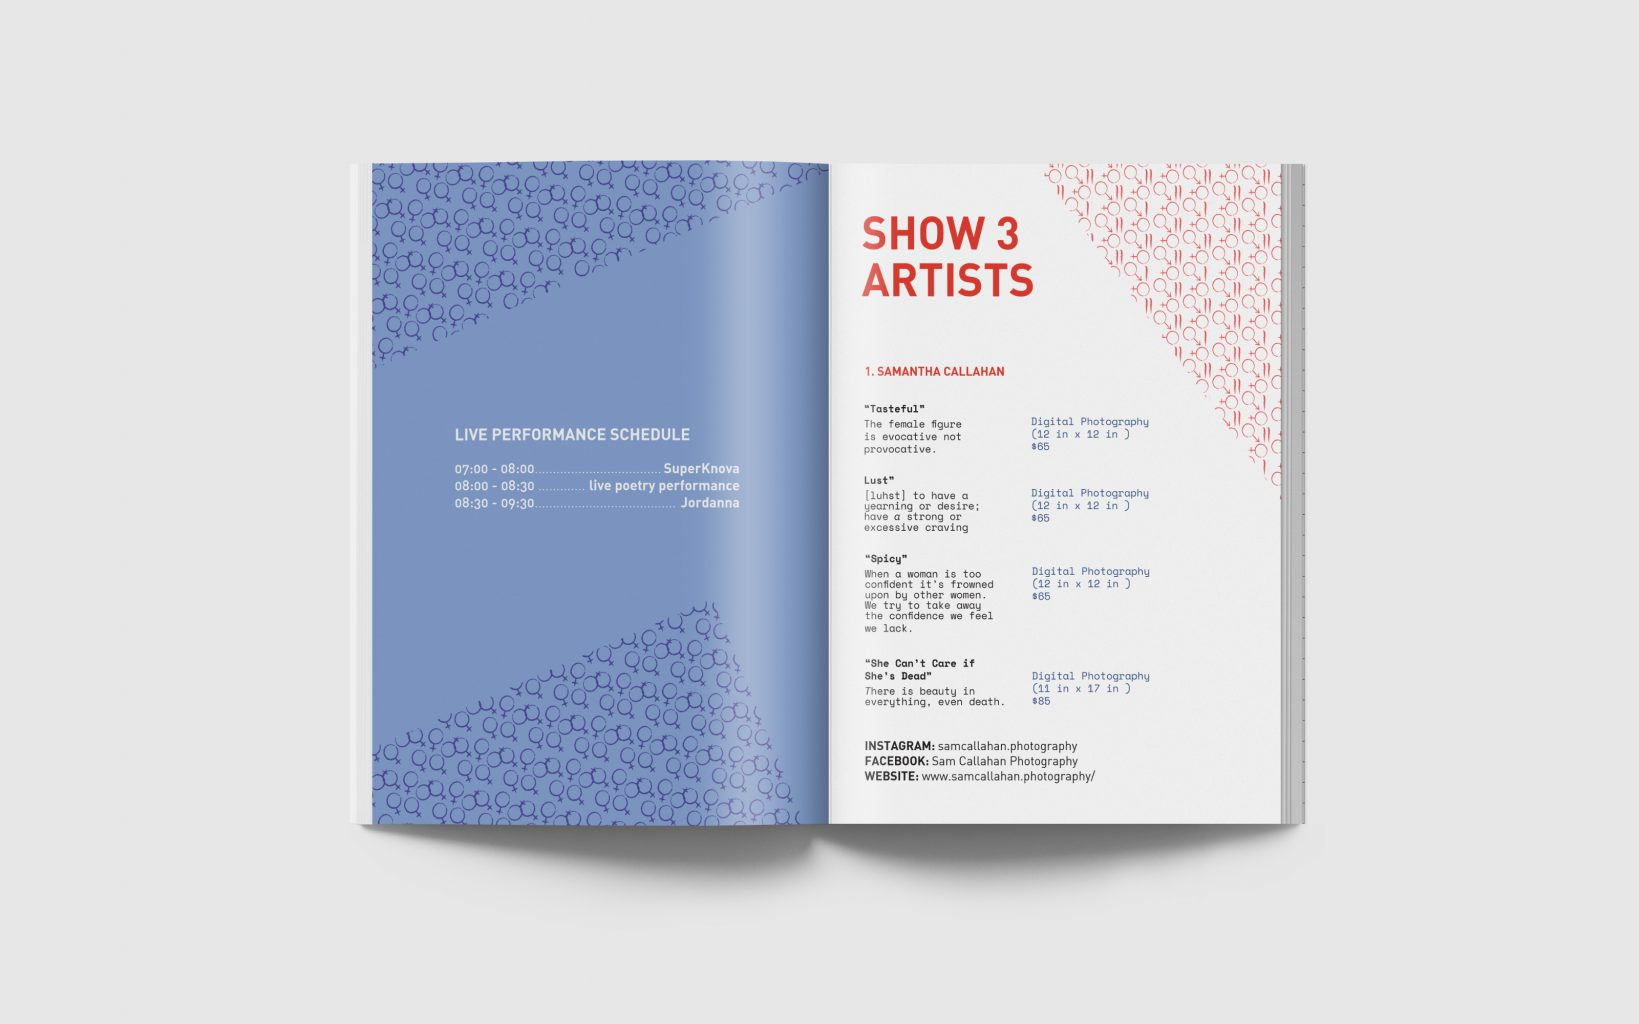 show program spread